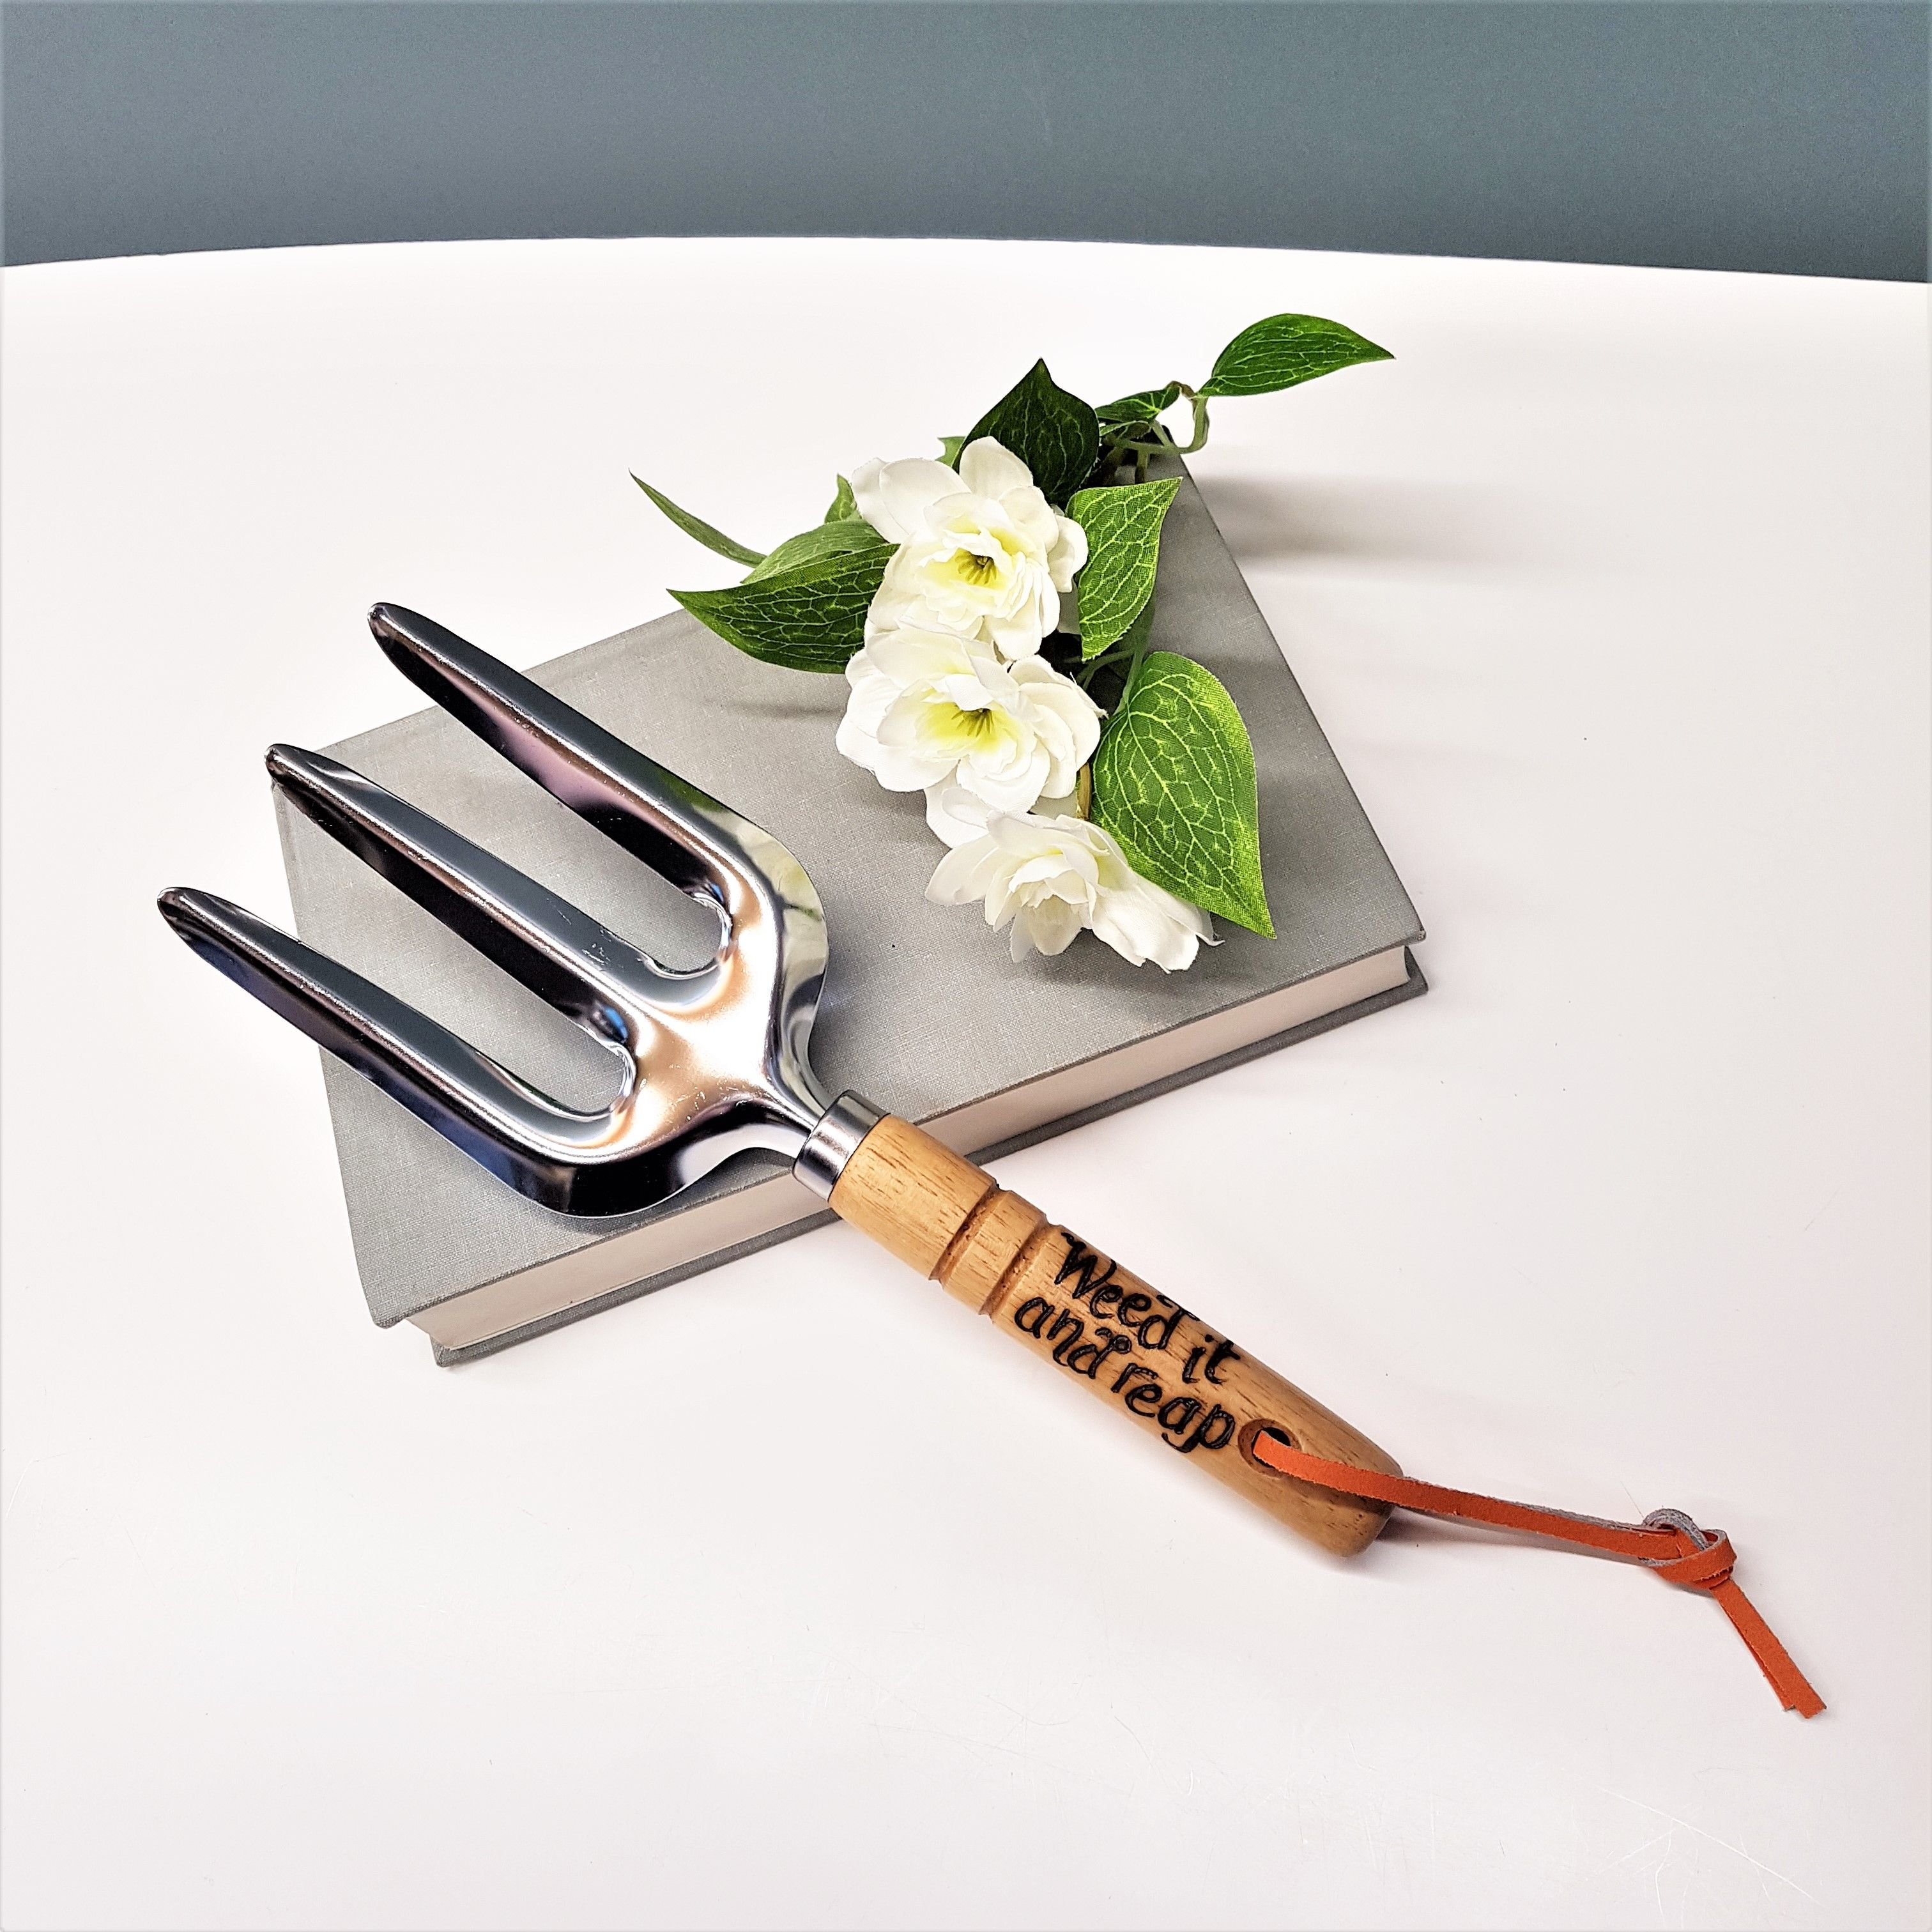 Hand engraved garden tools with your own messages hand